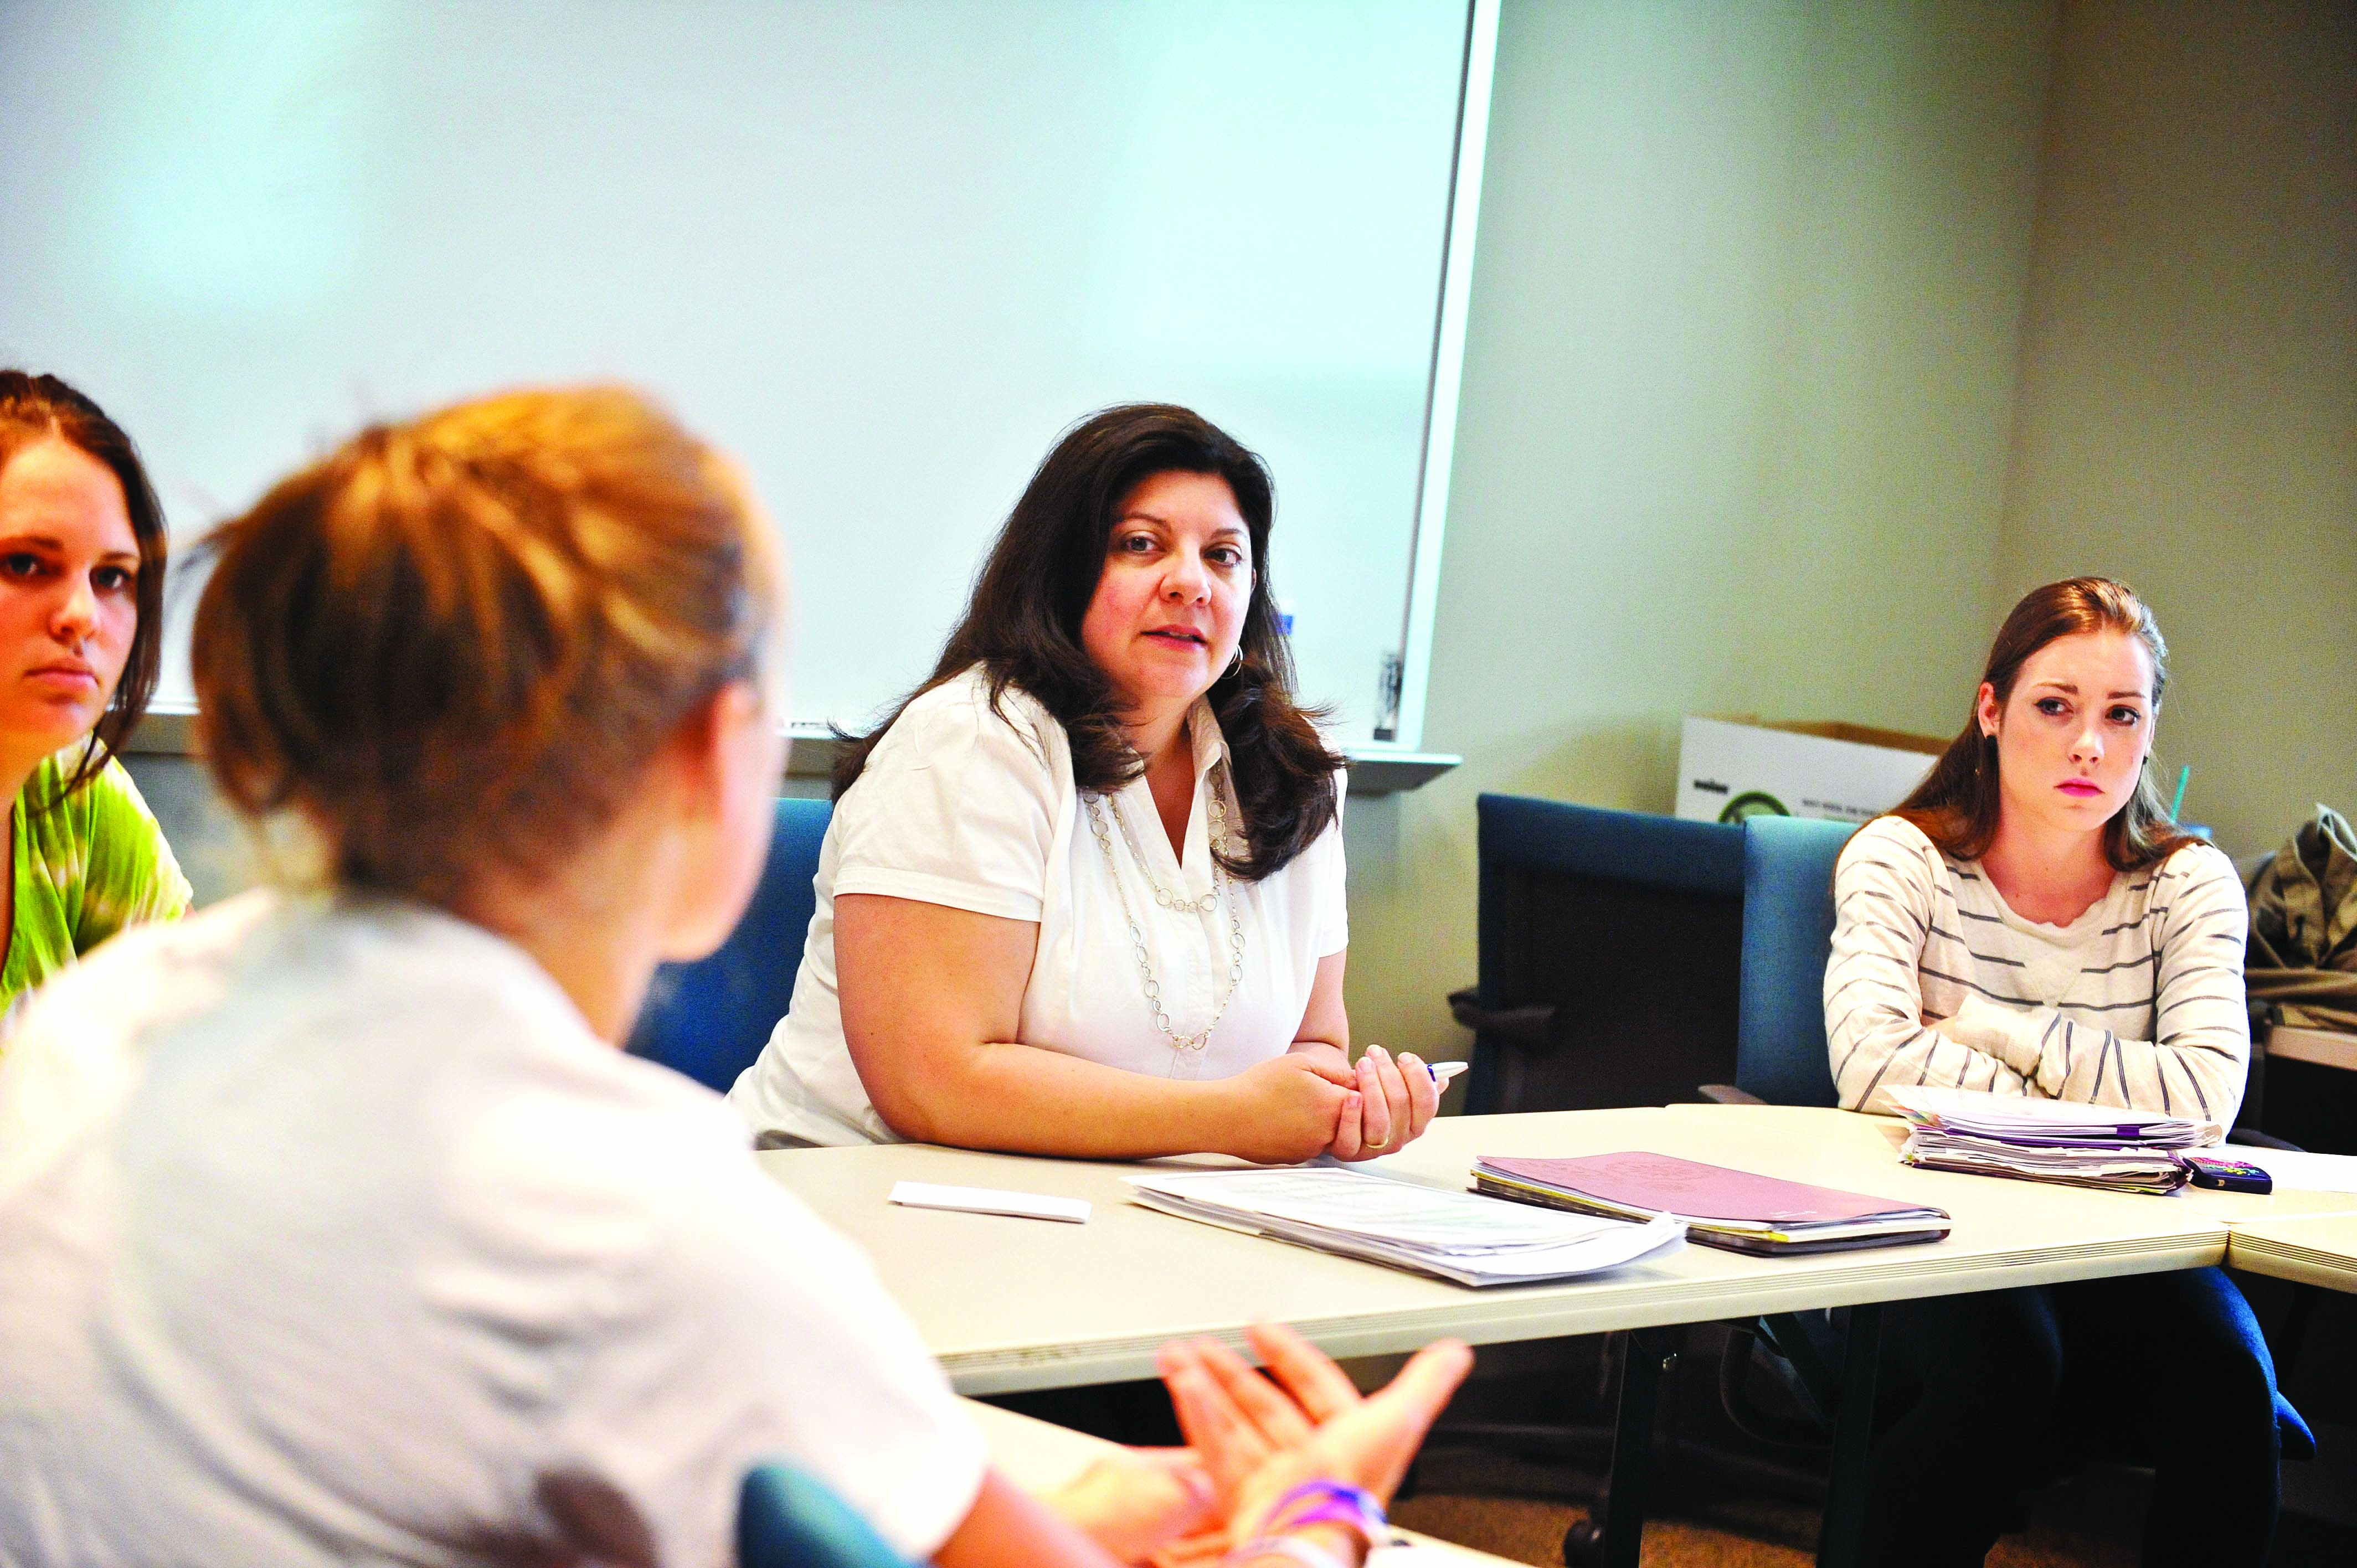 Rehabilitation counseling ms counseling human services the since 1965 the university of scranton rehabilitation counseling program has been preparing students to work in the wide field of rehabilitation counseling xflitez Image collections